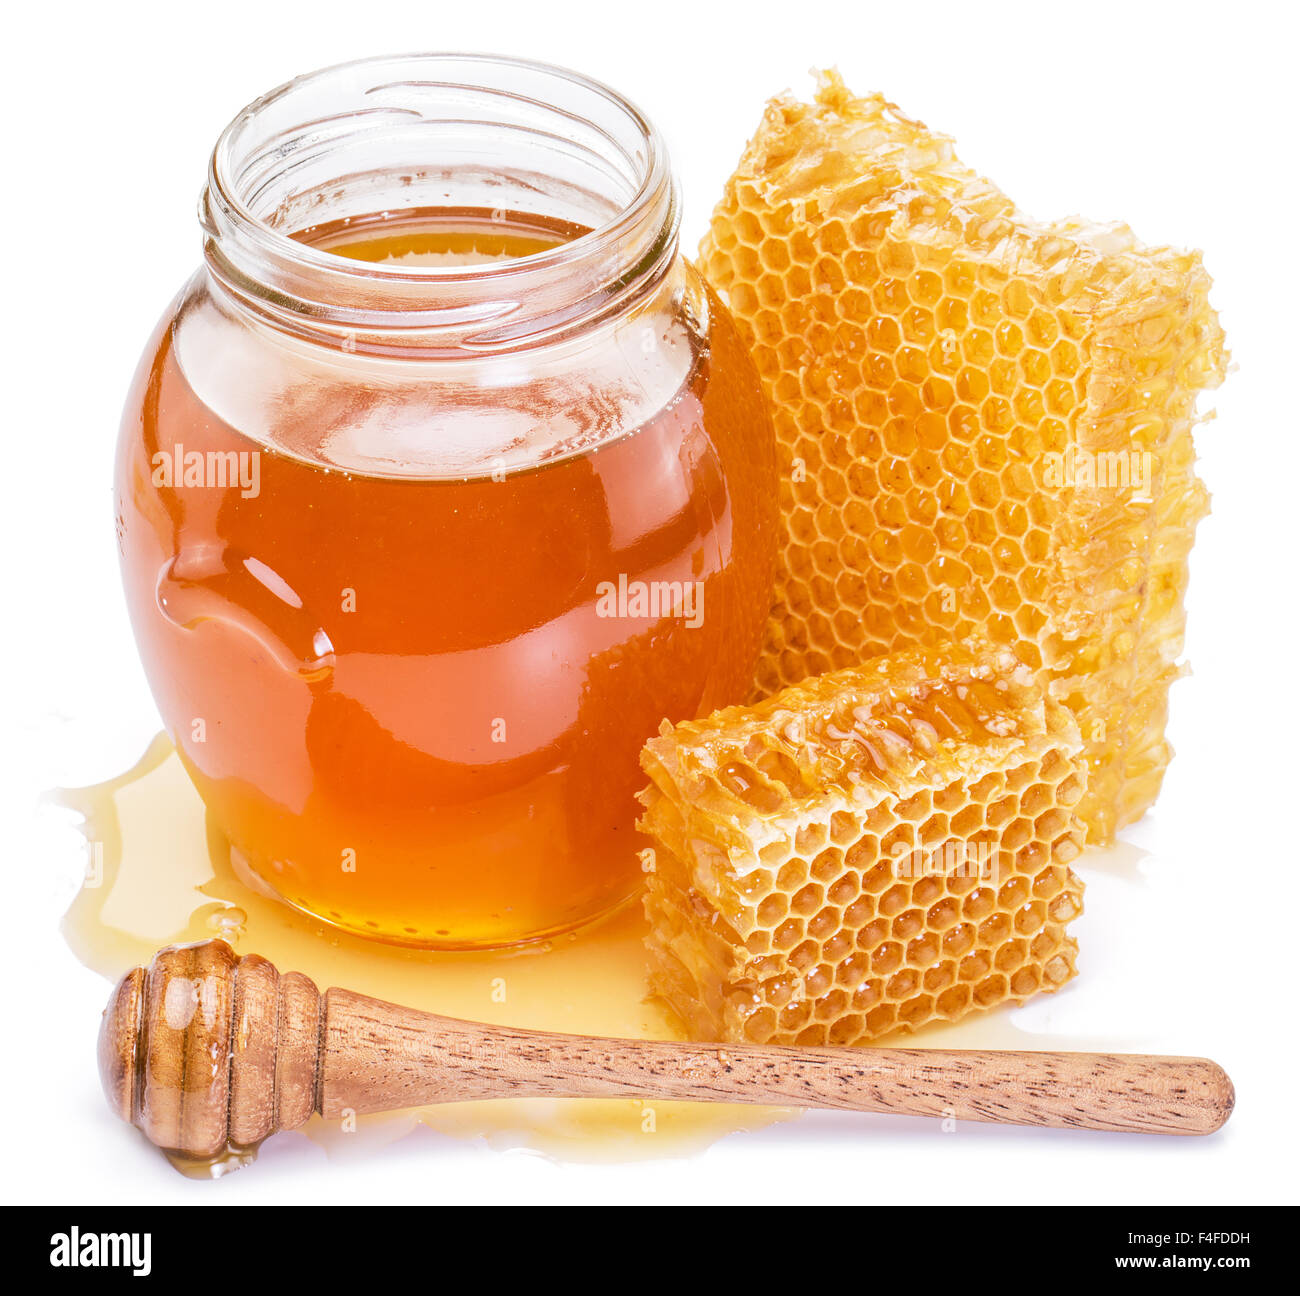 Honeycomb and pot of fresh honey. High-quality picture contains clipping paths. - Stock Image